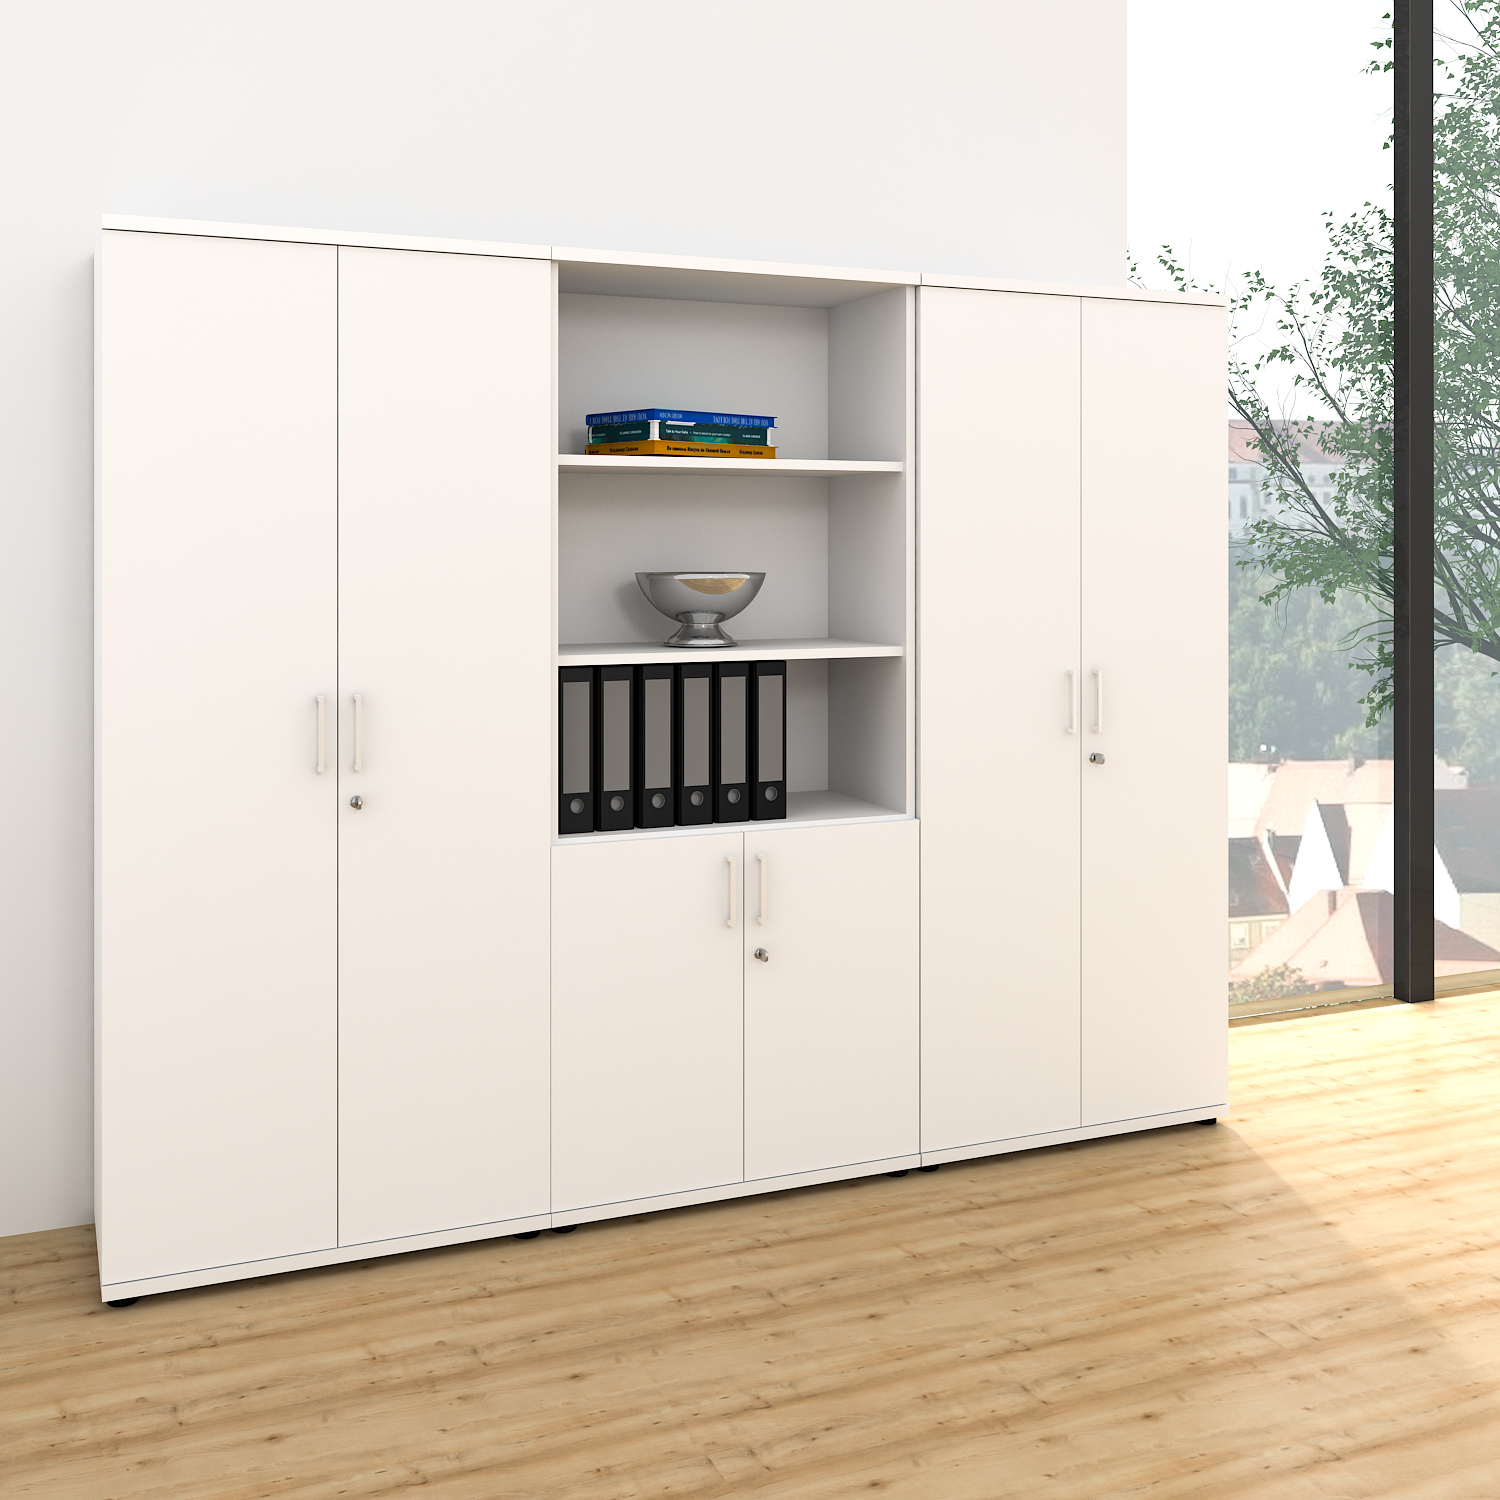 profi schrankwand abschlie bar schrank b roschrank fl gelt renschrank kombischra ebay. Black Bedroom Furniture Sets. Home Design Ideas